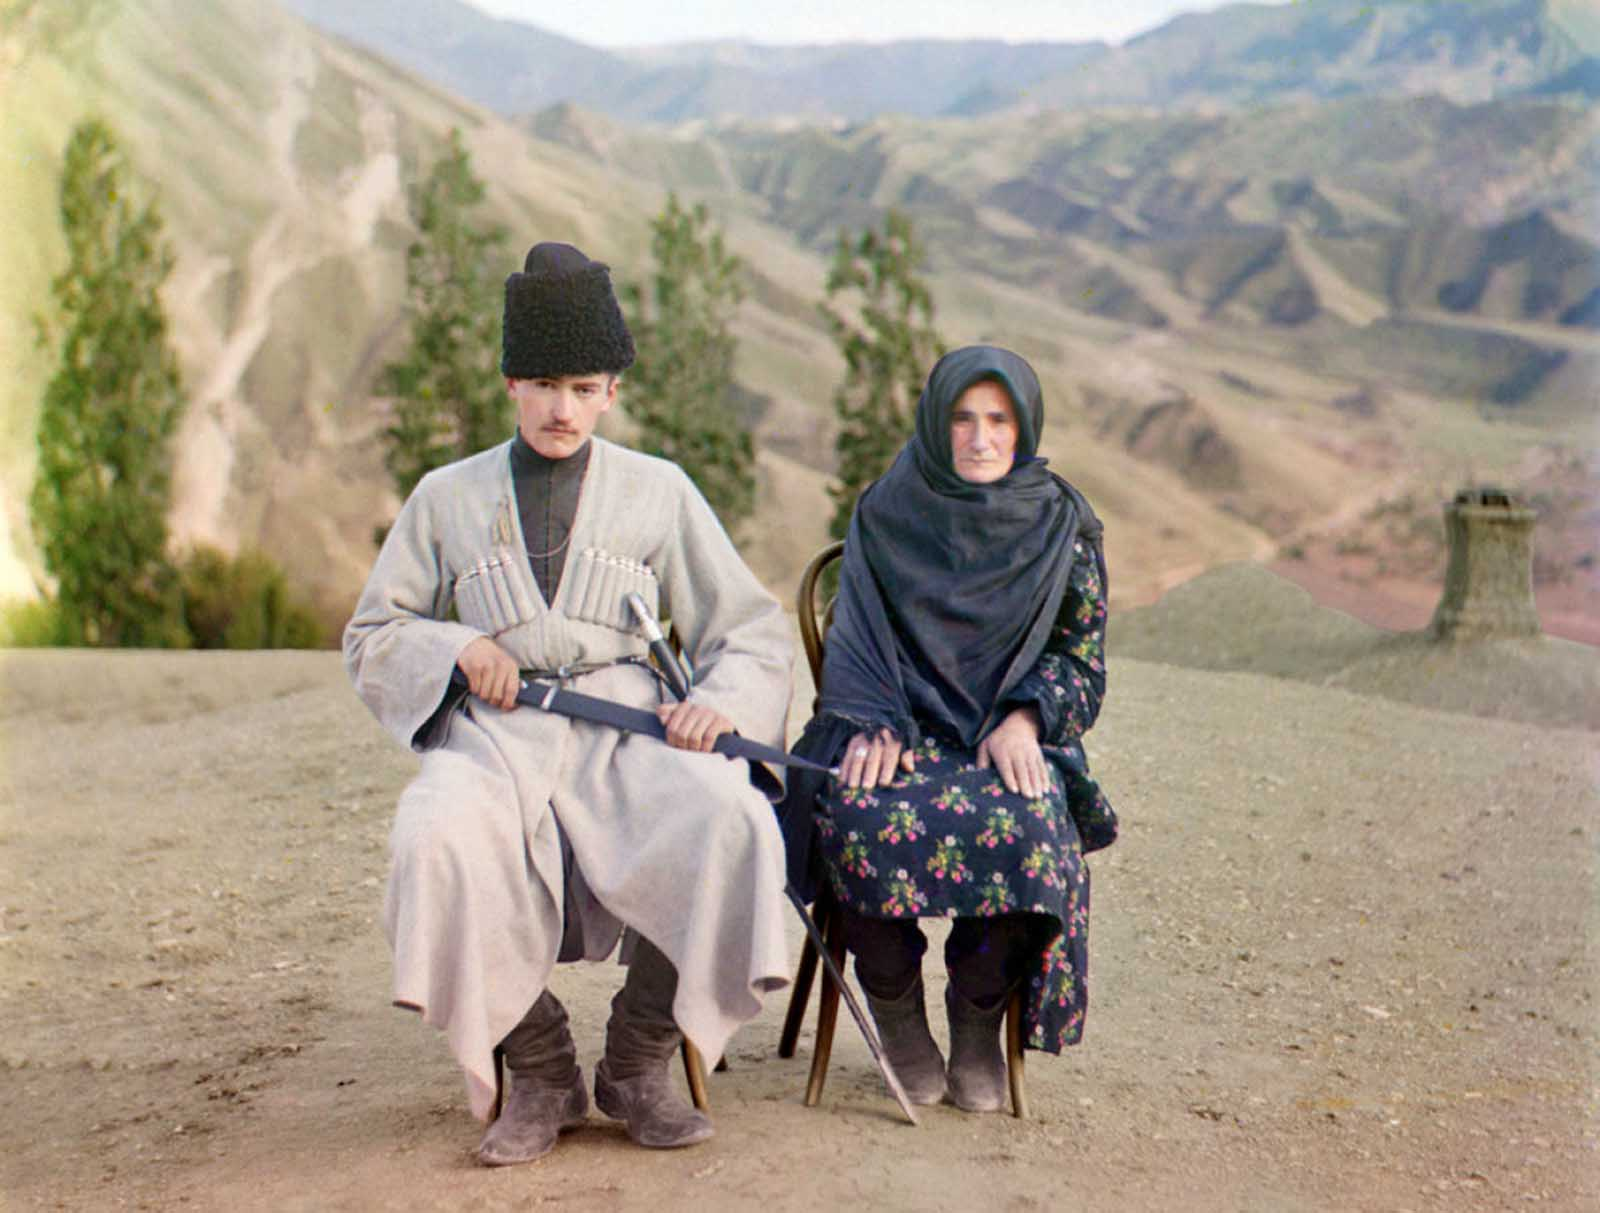 A man and woman pose in Dagestan, 1910.